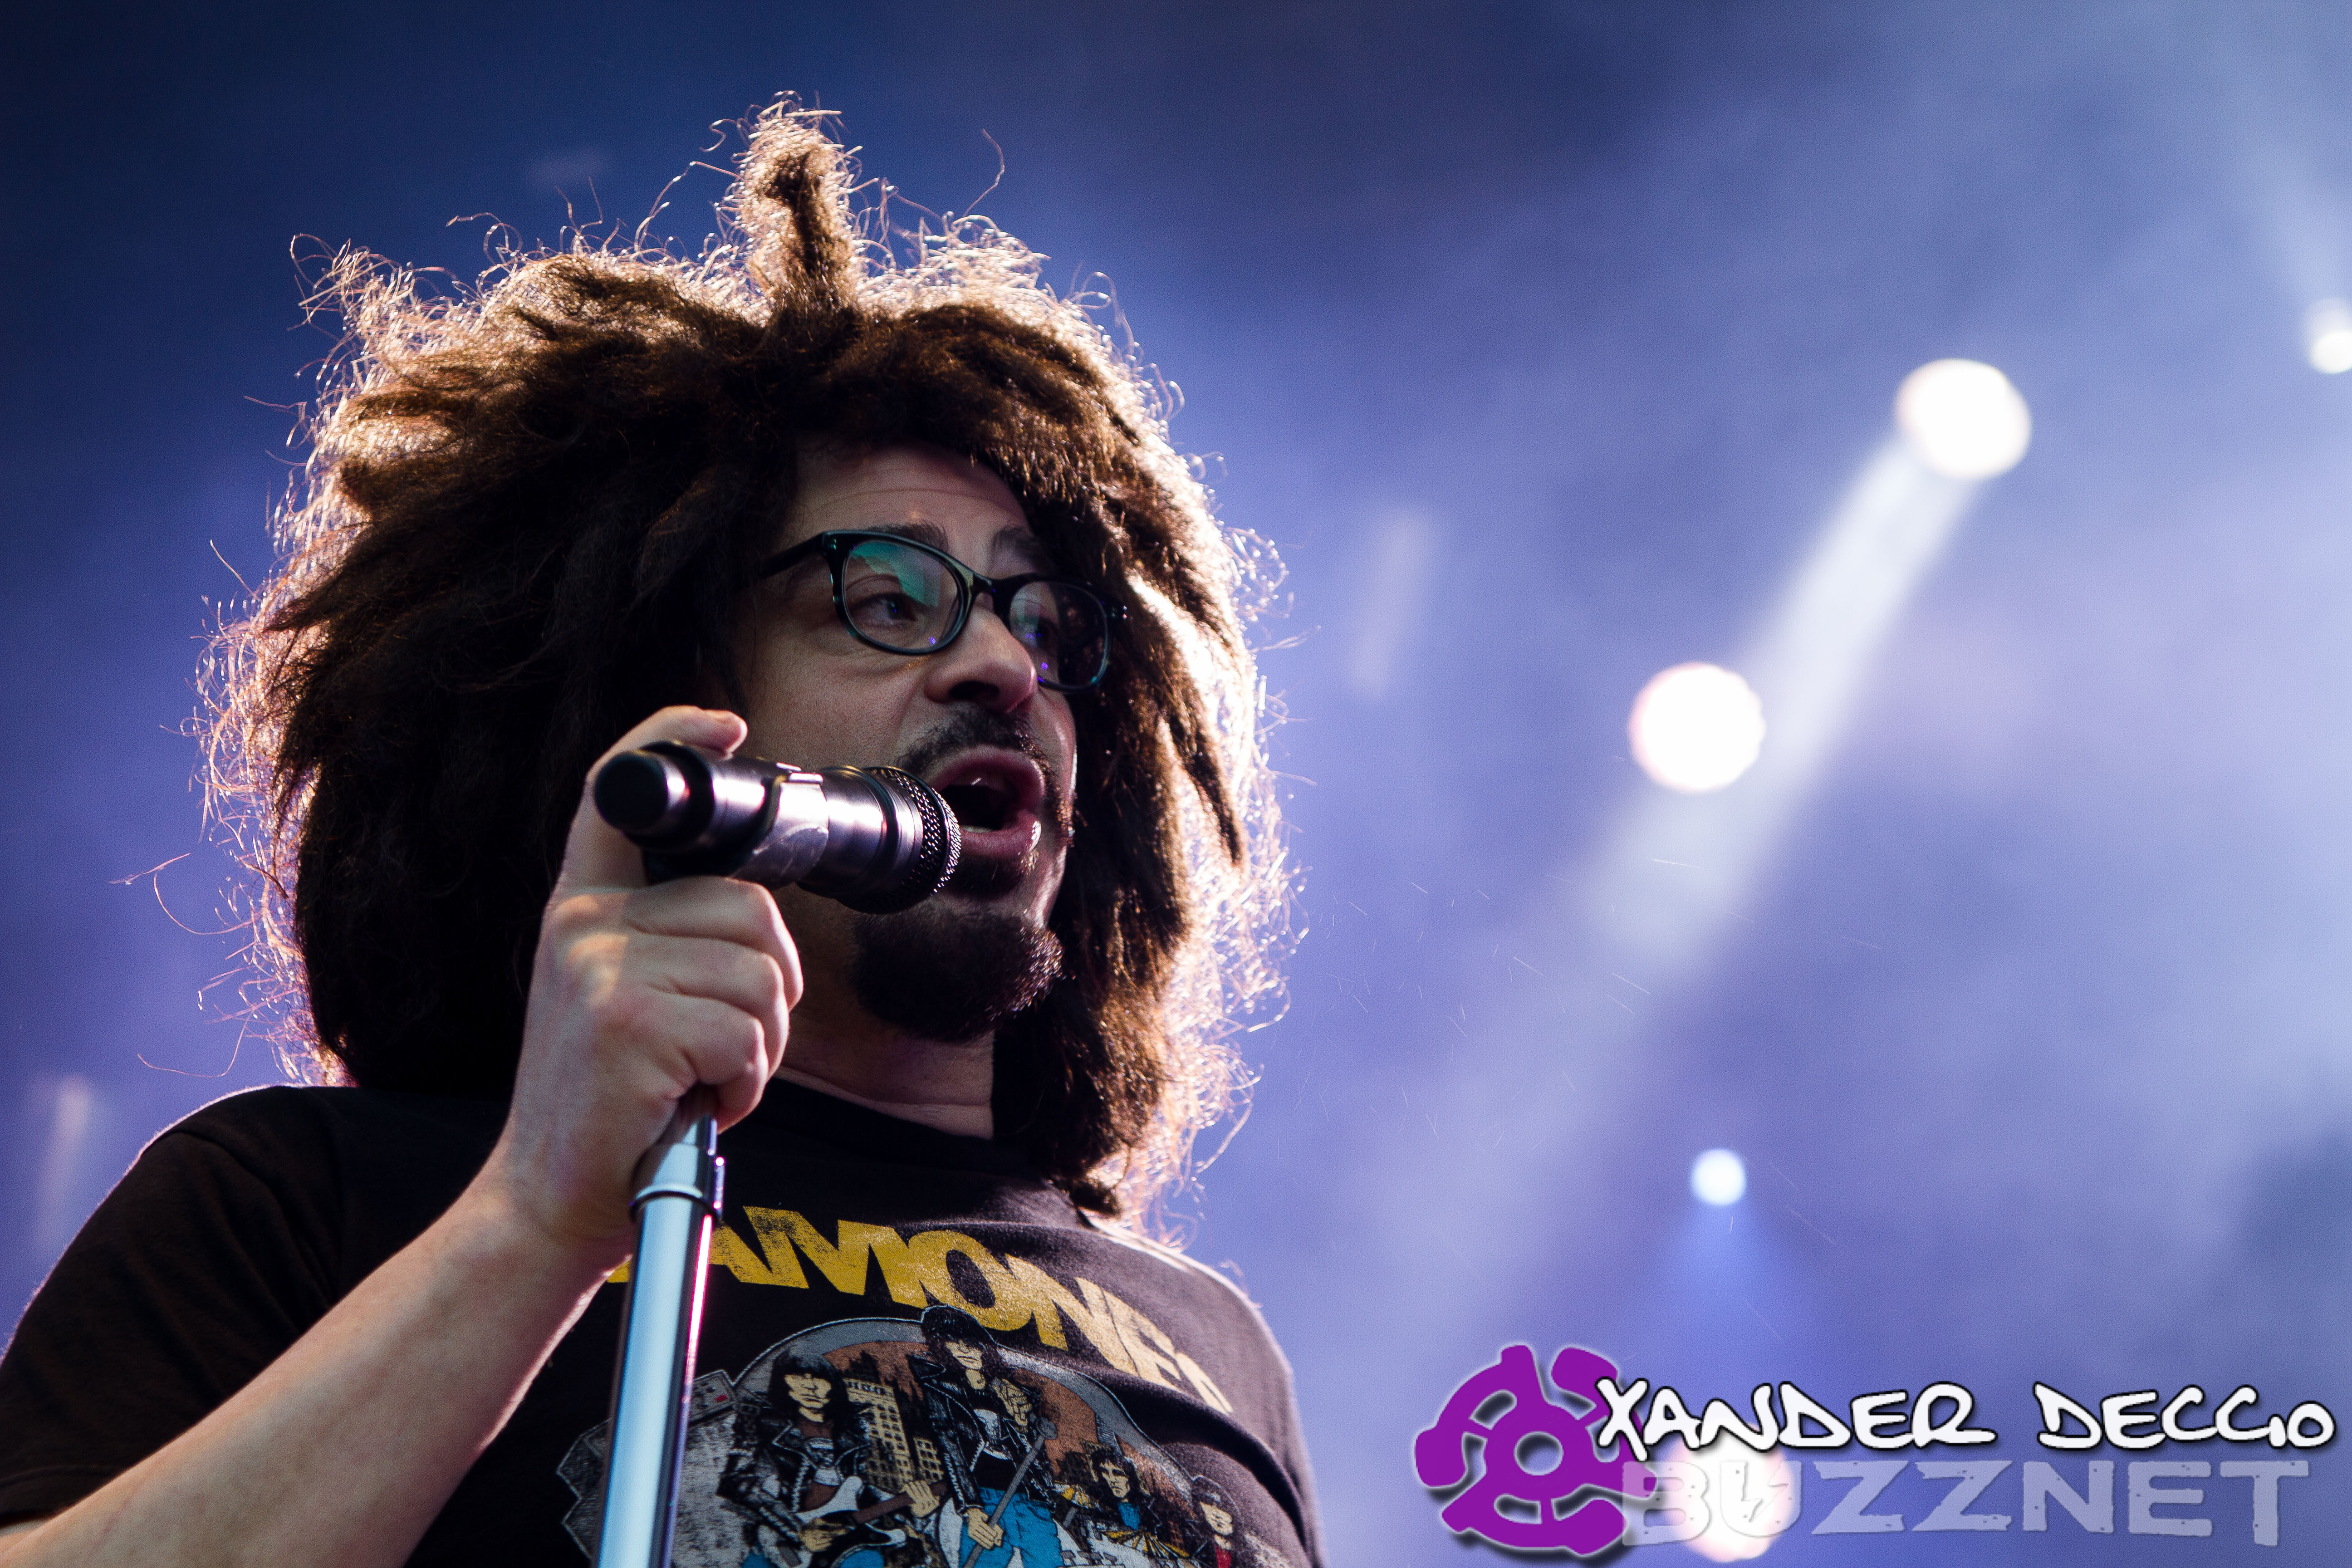 Counting Crows @ Maryhill Winery (Photo by Xander Deccio)